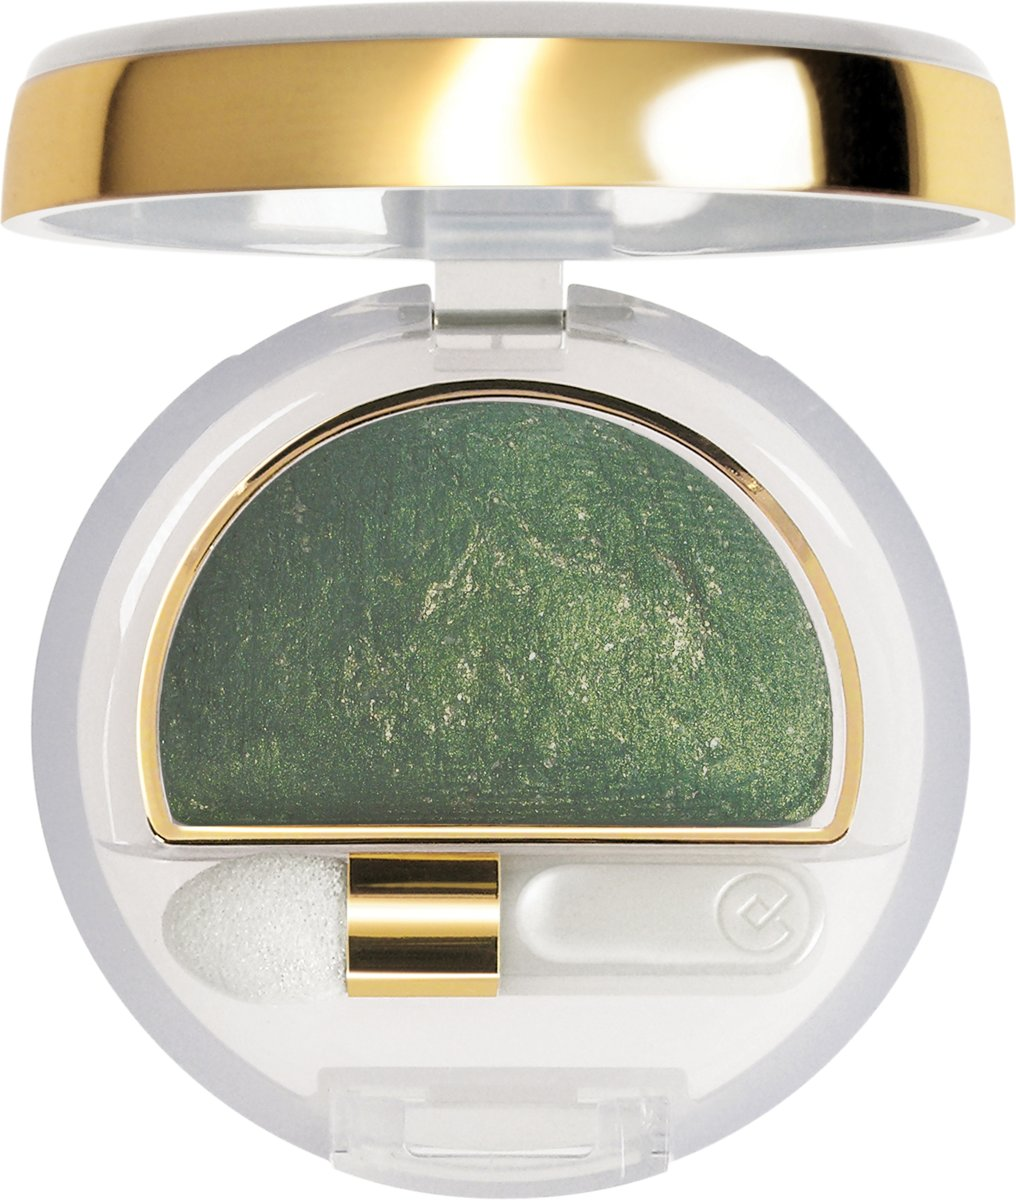 Collistar Double Effect Wet & Dry Eyeshadow - 10 Gold green - Oogschaduw